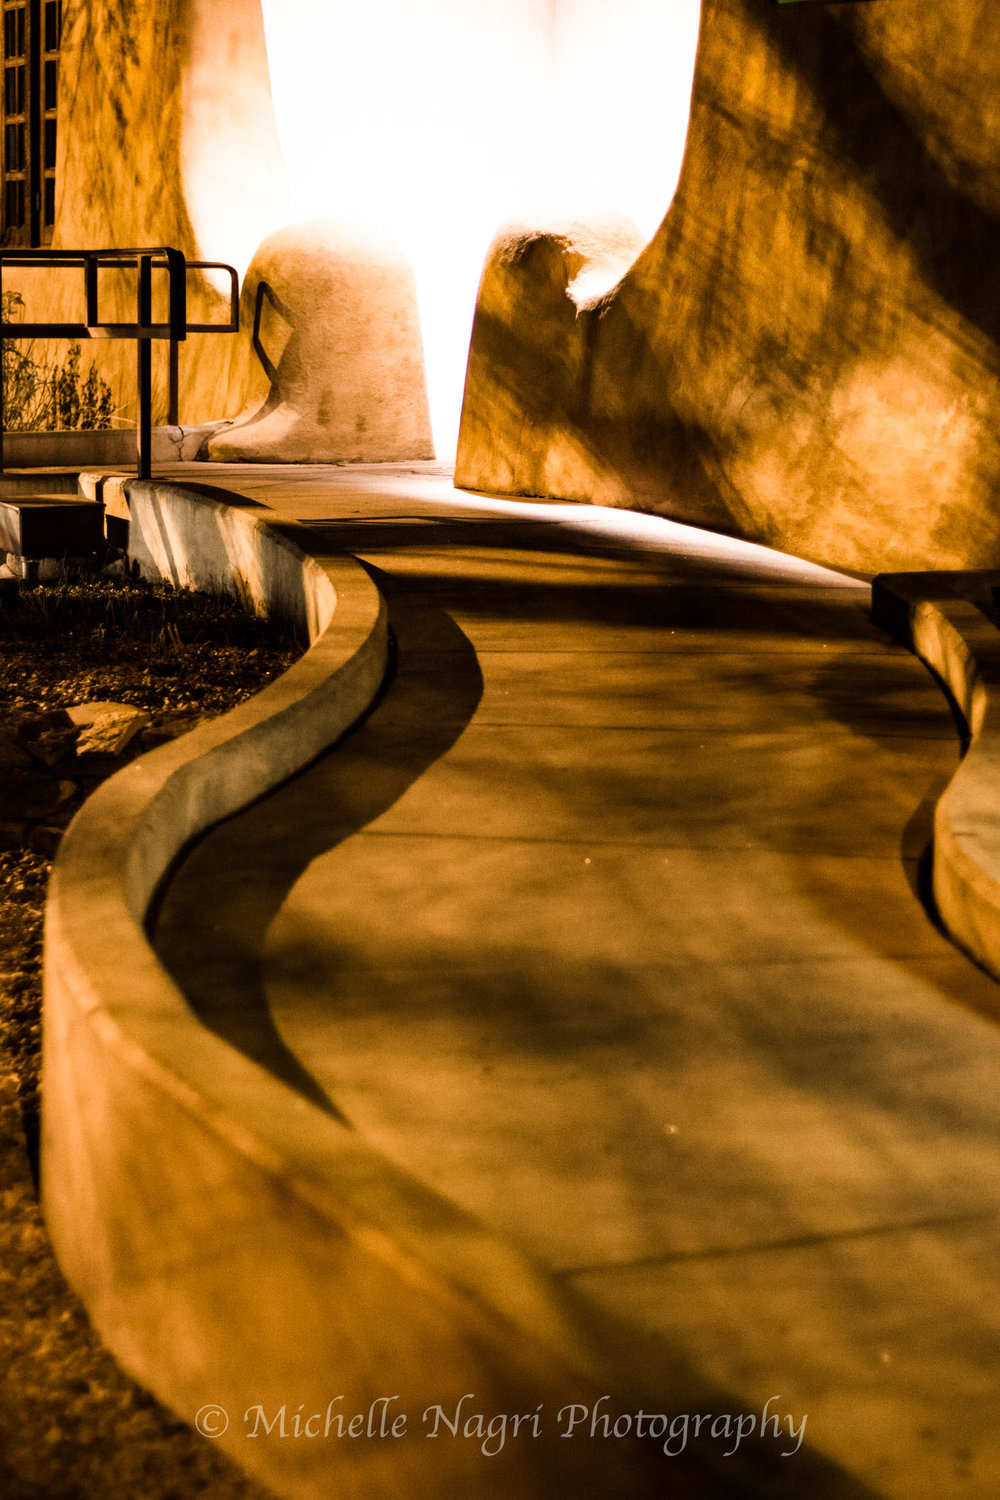 I intentionally kept the blown out light on the entryway to the New Mexico Museum of Art. The sidewalk gently curving to a bright light.